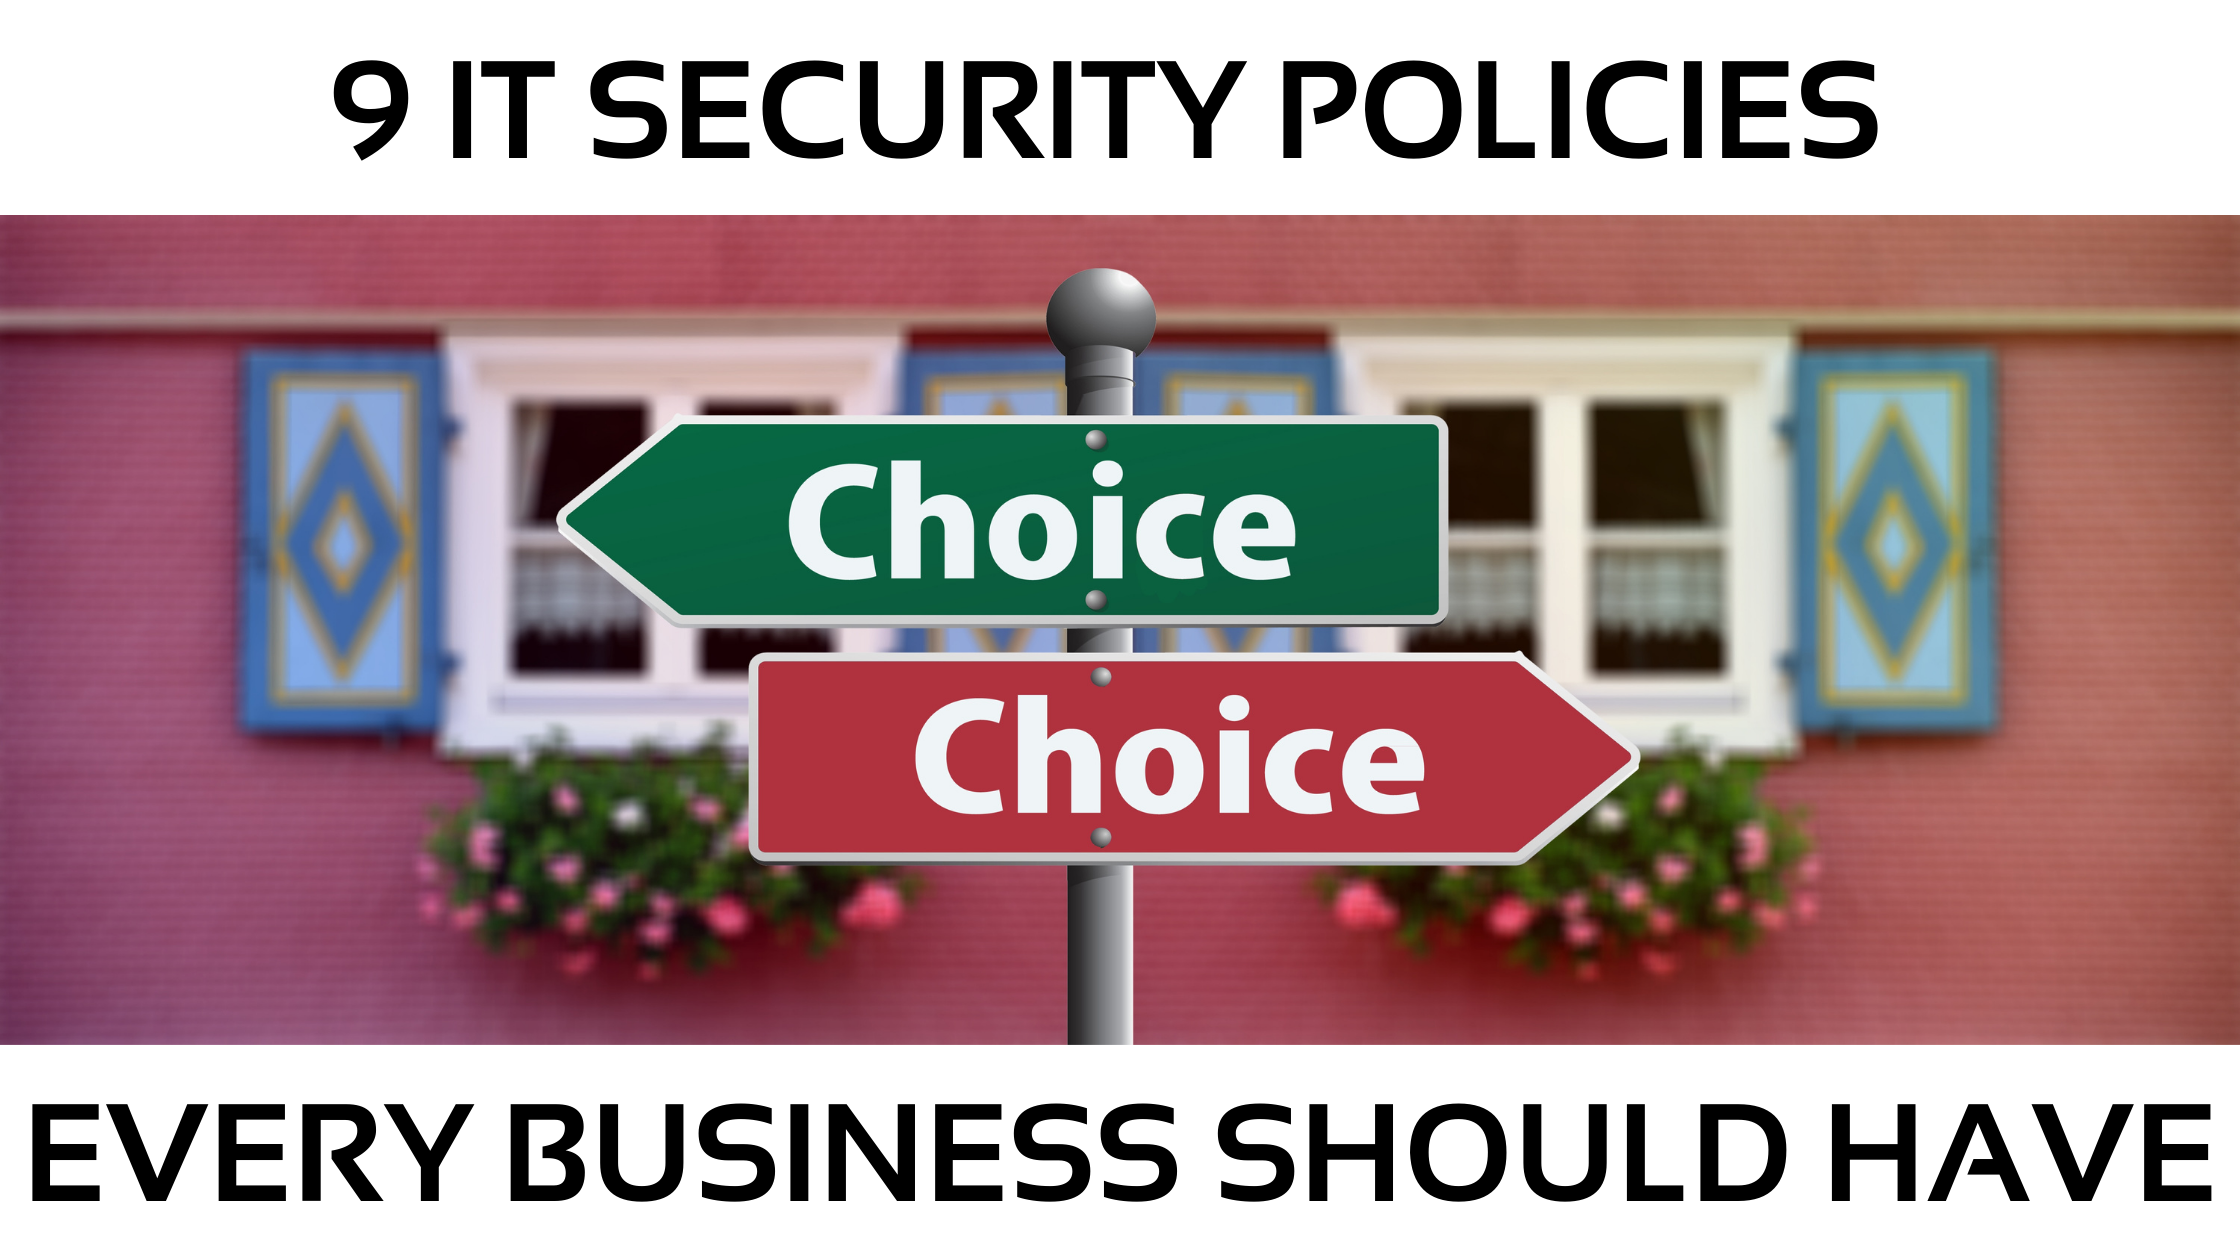 it-security-policies-business-banner